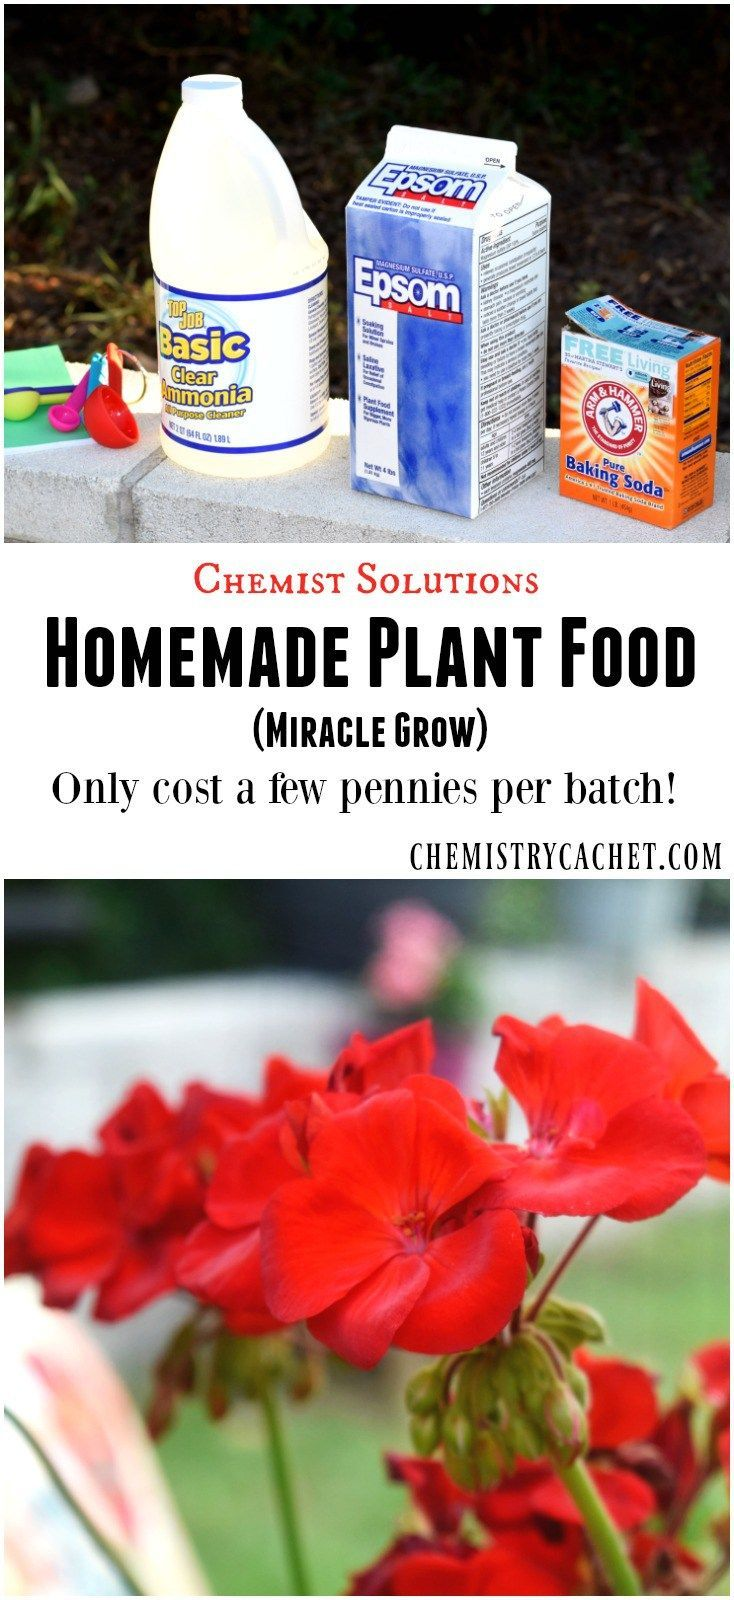 Easy Homemade Plant Food Recipe (Miracle Grow)! This post is part of the chemist solutions series, sharing awesome knowledge for you on chemistrycachet.com